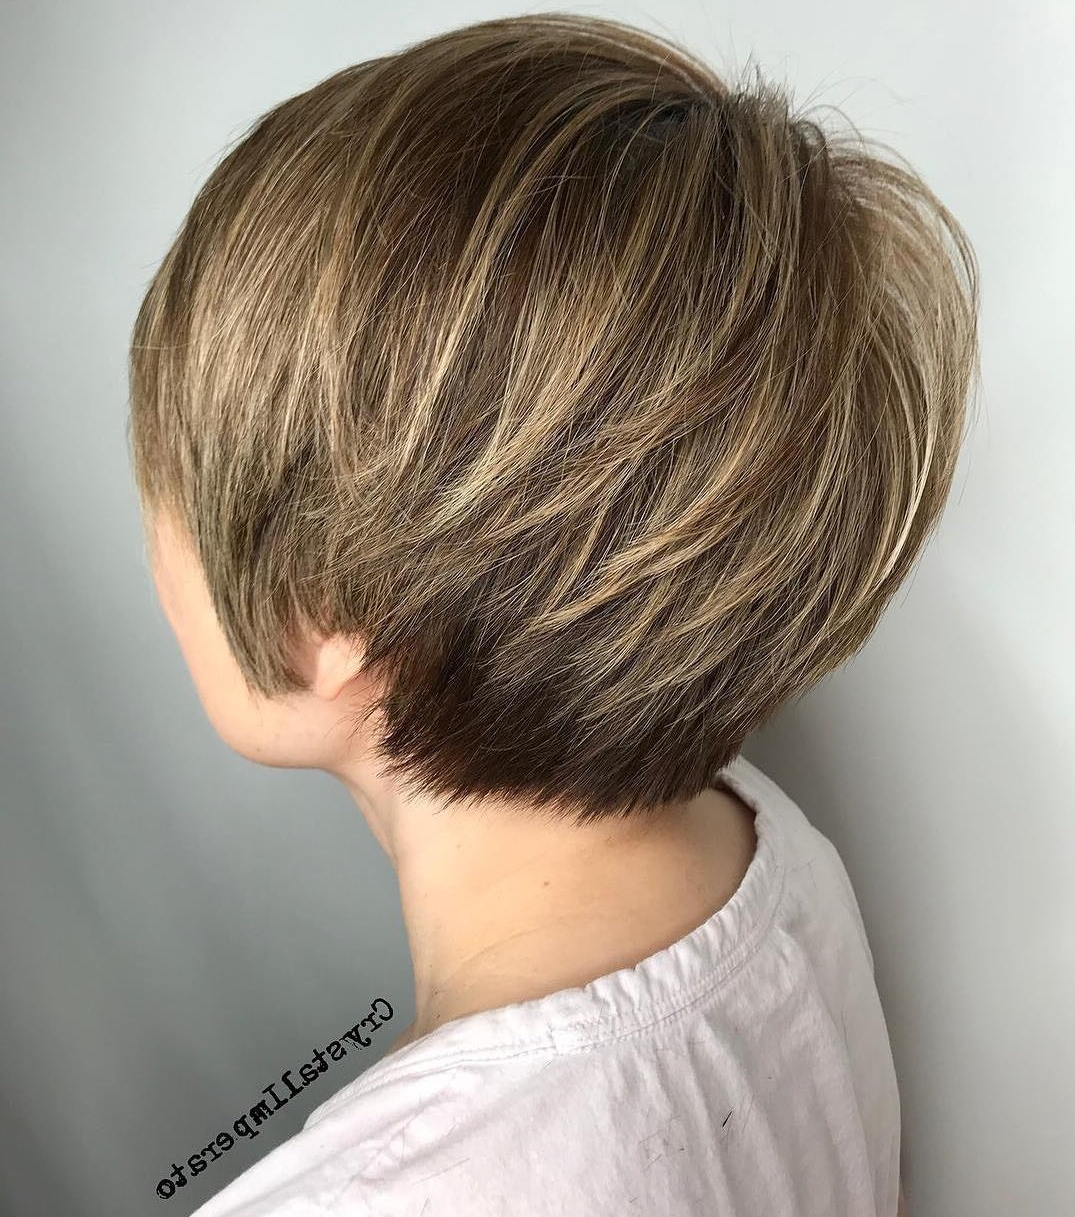 Recent Part Pixie Part Bob Hairstyles With 50 Hottest Pixie Cut Hairstyles In (View 6 of 20)